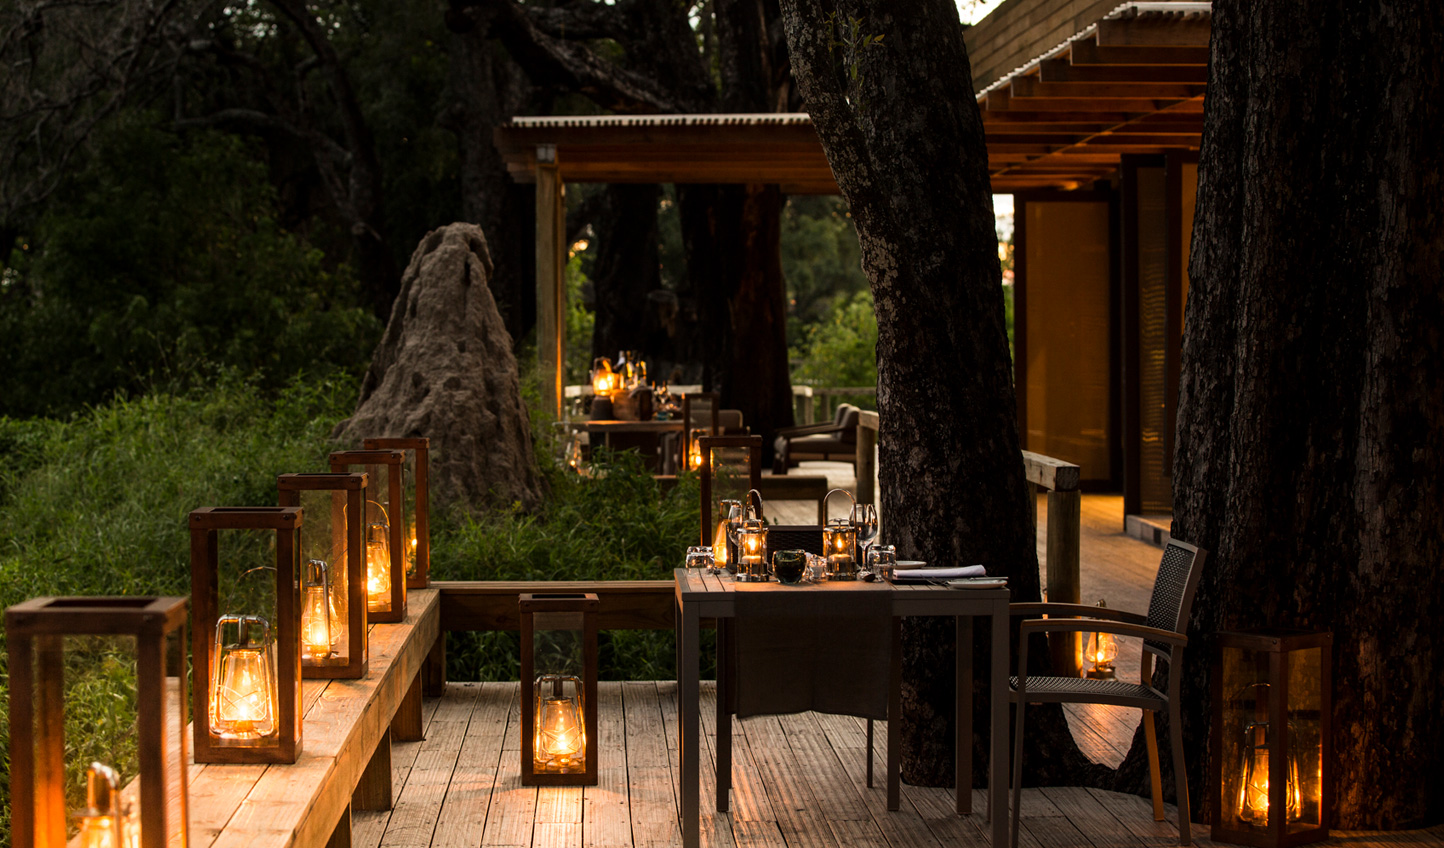 Dine on the picturesque veranda, looking out onto wild plains